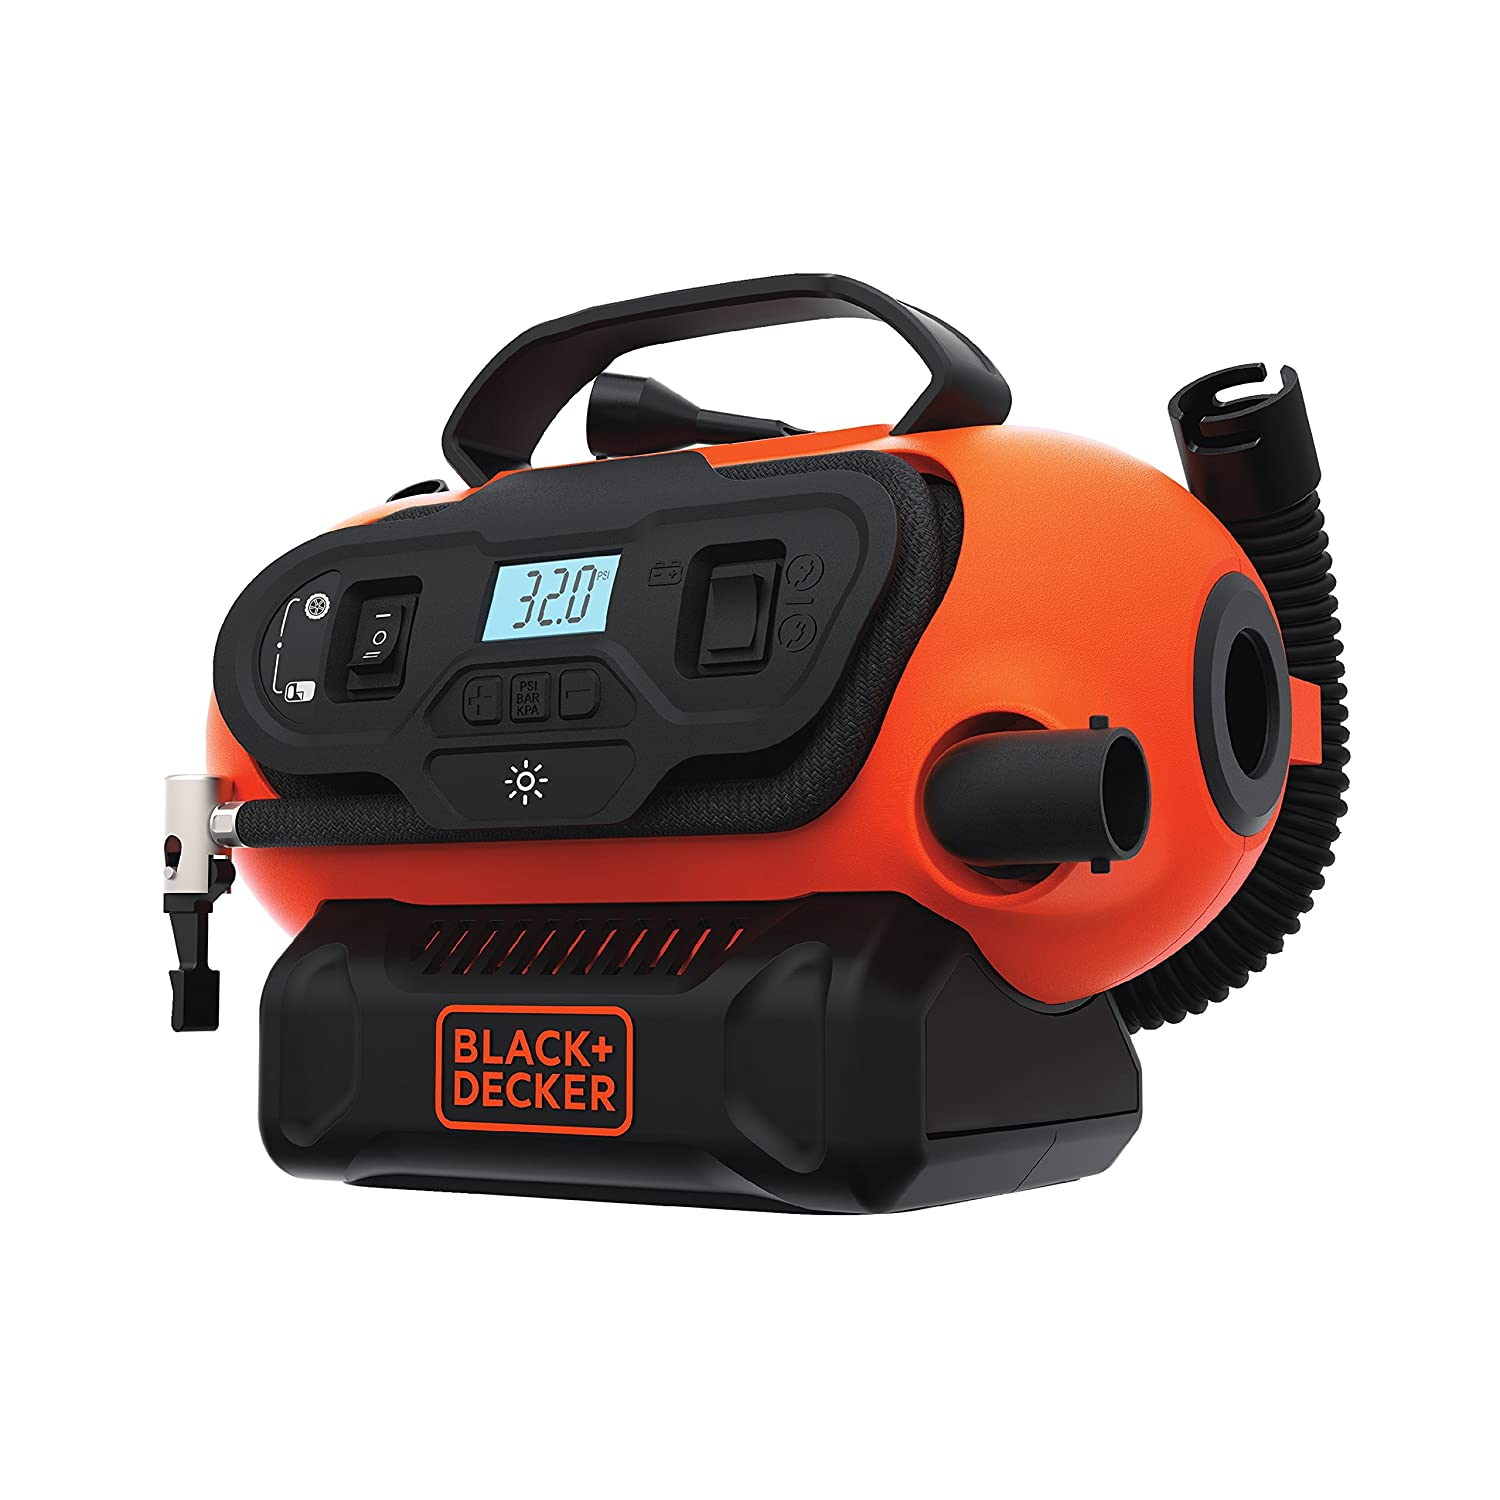 BLACK+DECKER BDINF20C 20V Lithium Cordless Multi-Purpose Inflator with LBXR20CK 20V Max Lithium Ion Battery + Charger - - Amazon.com